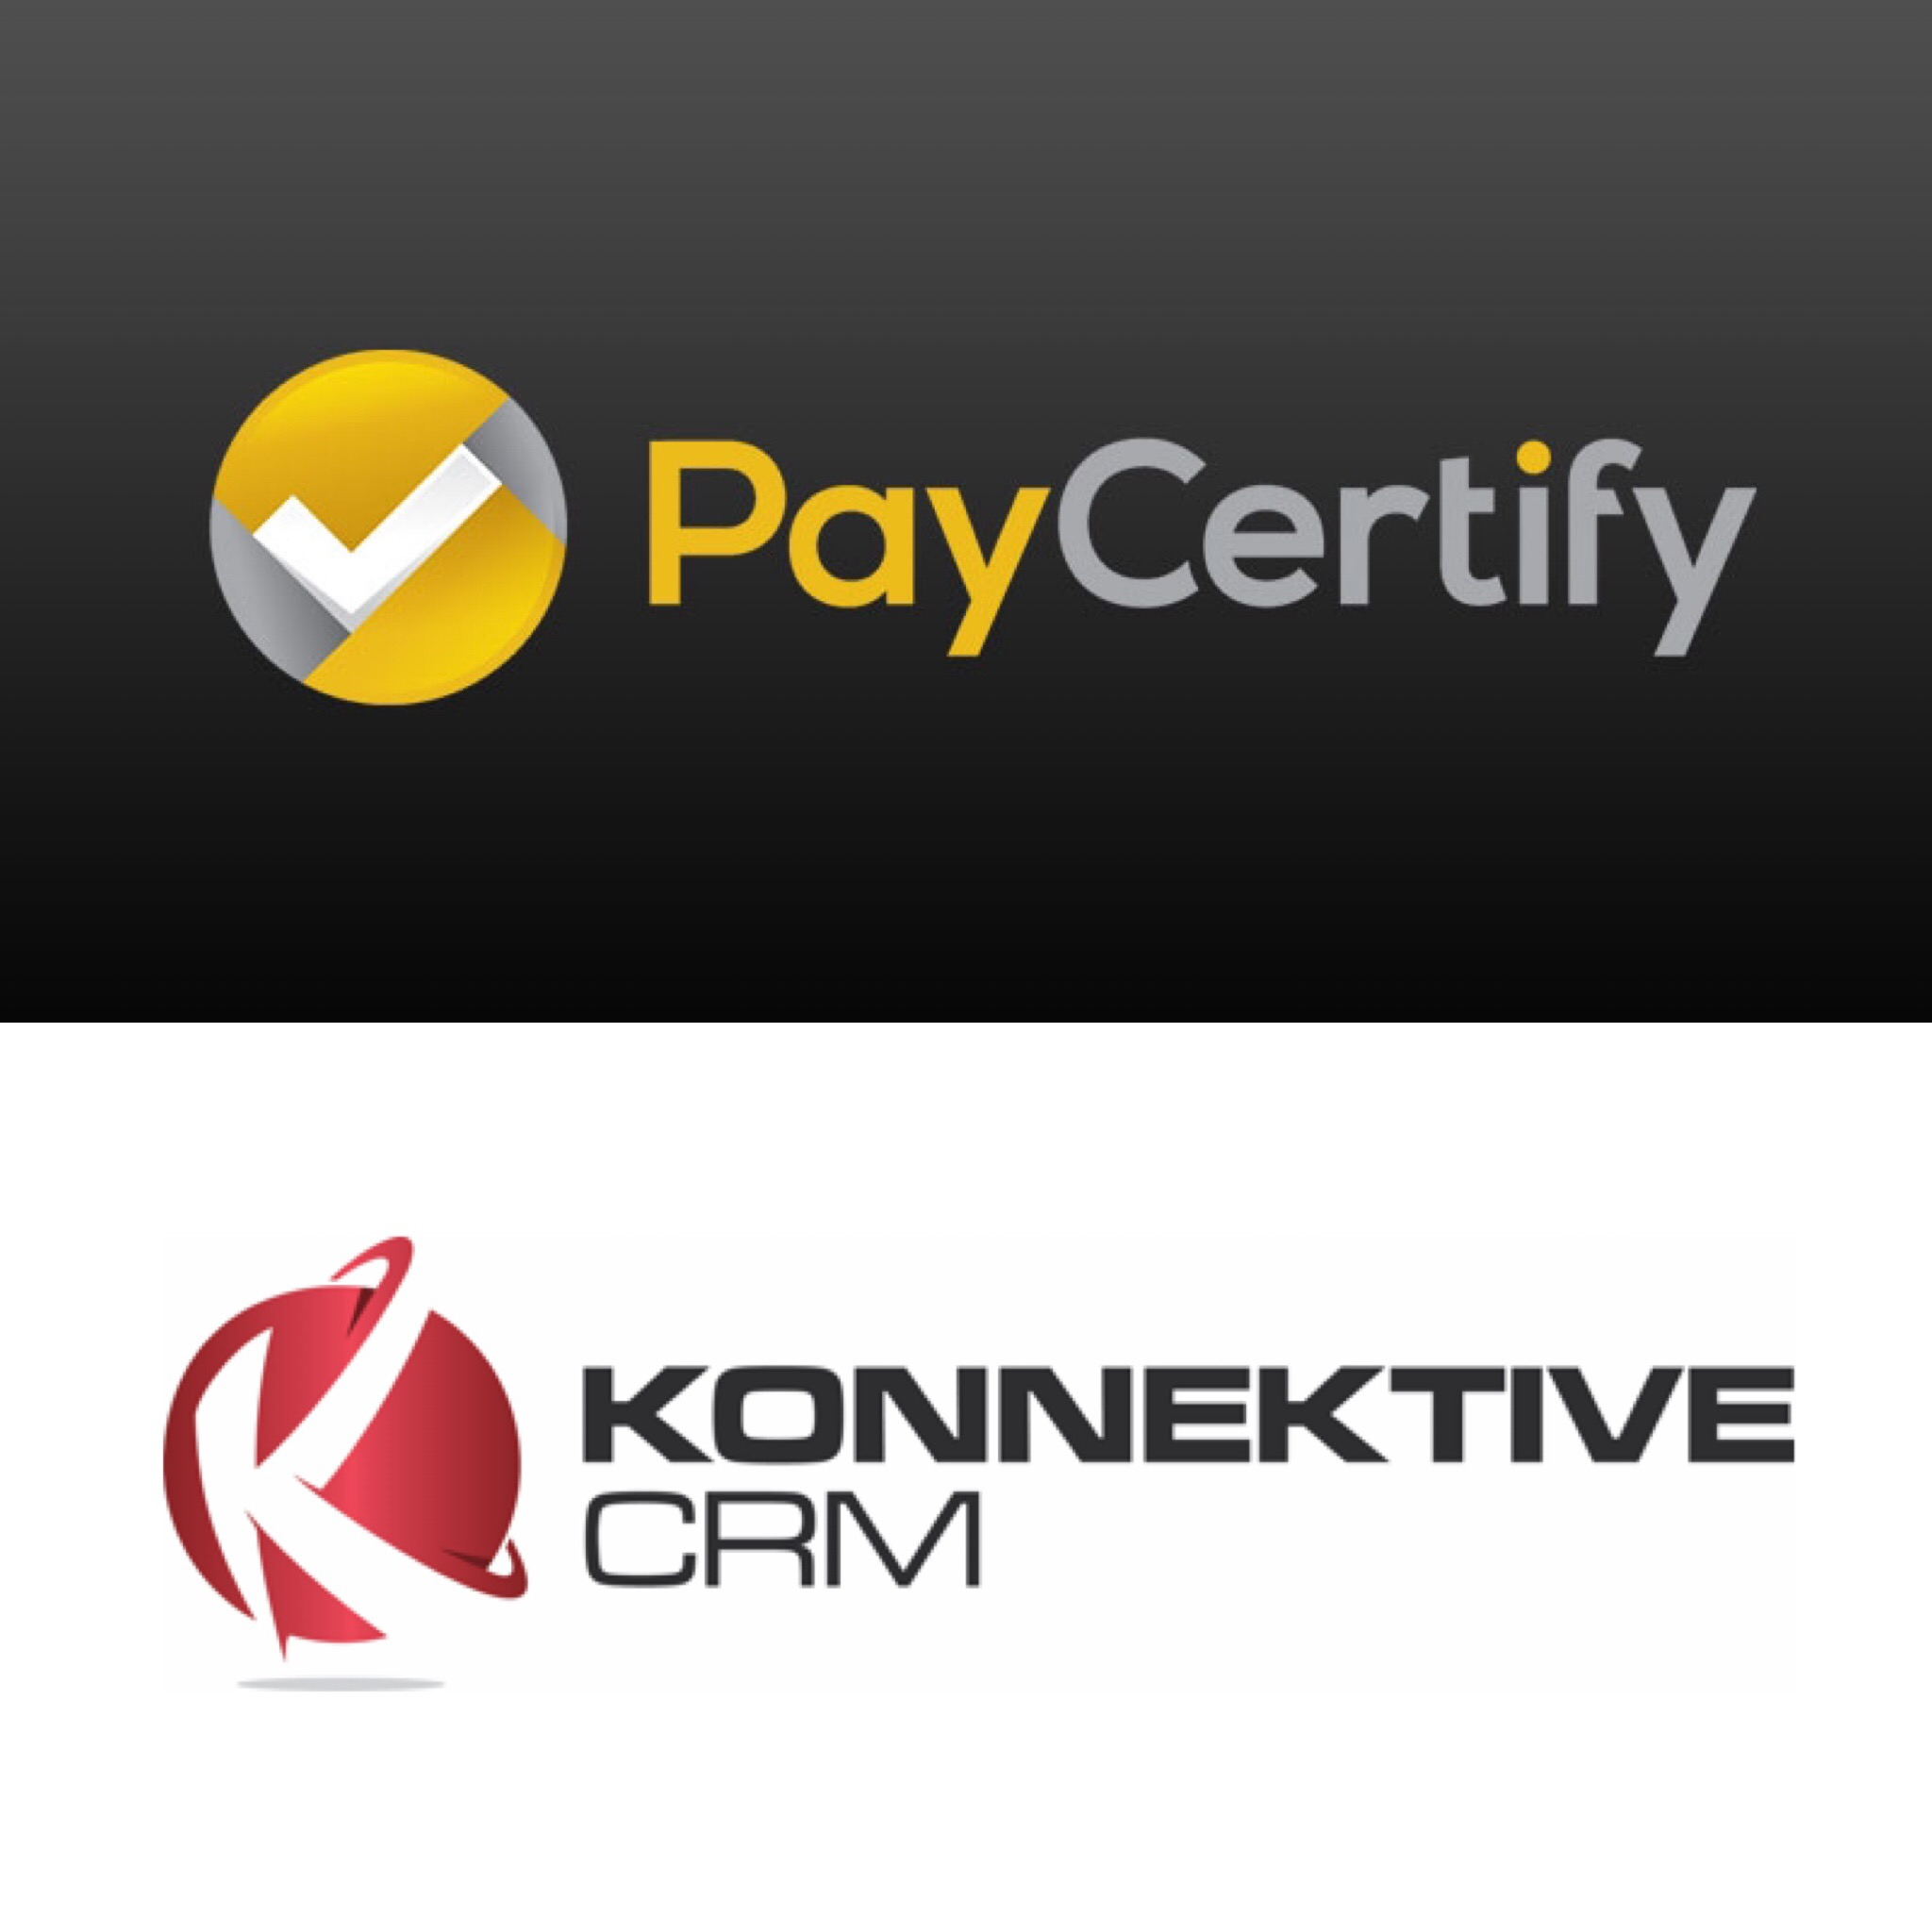 Paycertify And Konnektive Crm Team Up To Offer Streamlined Approval